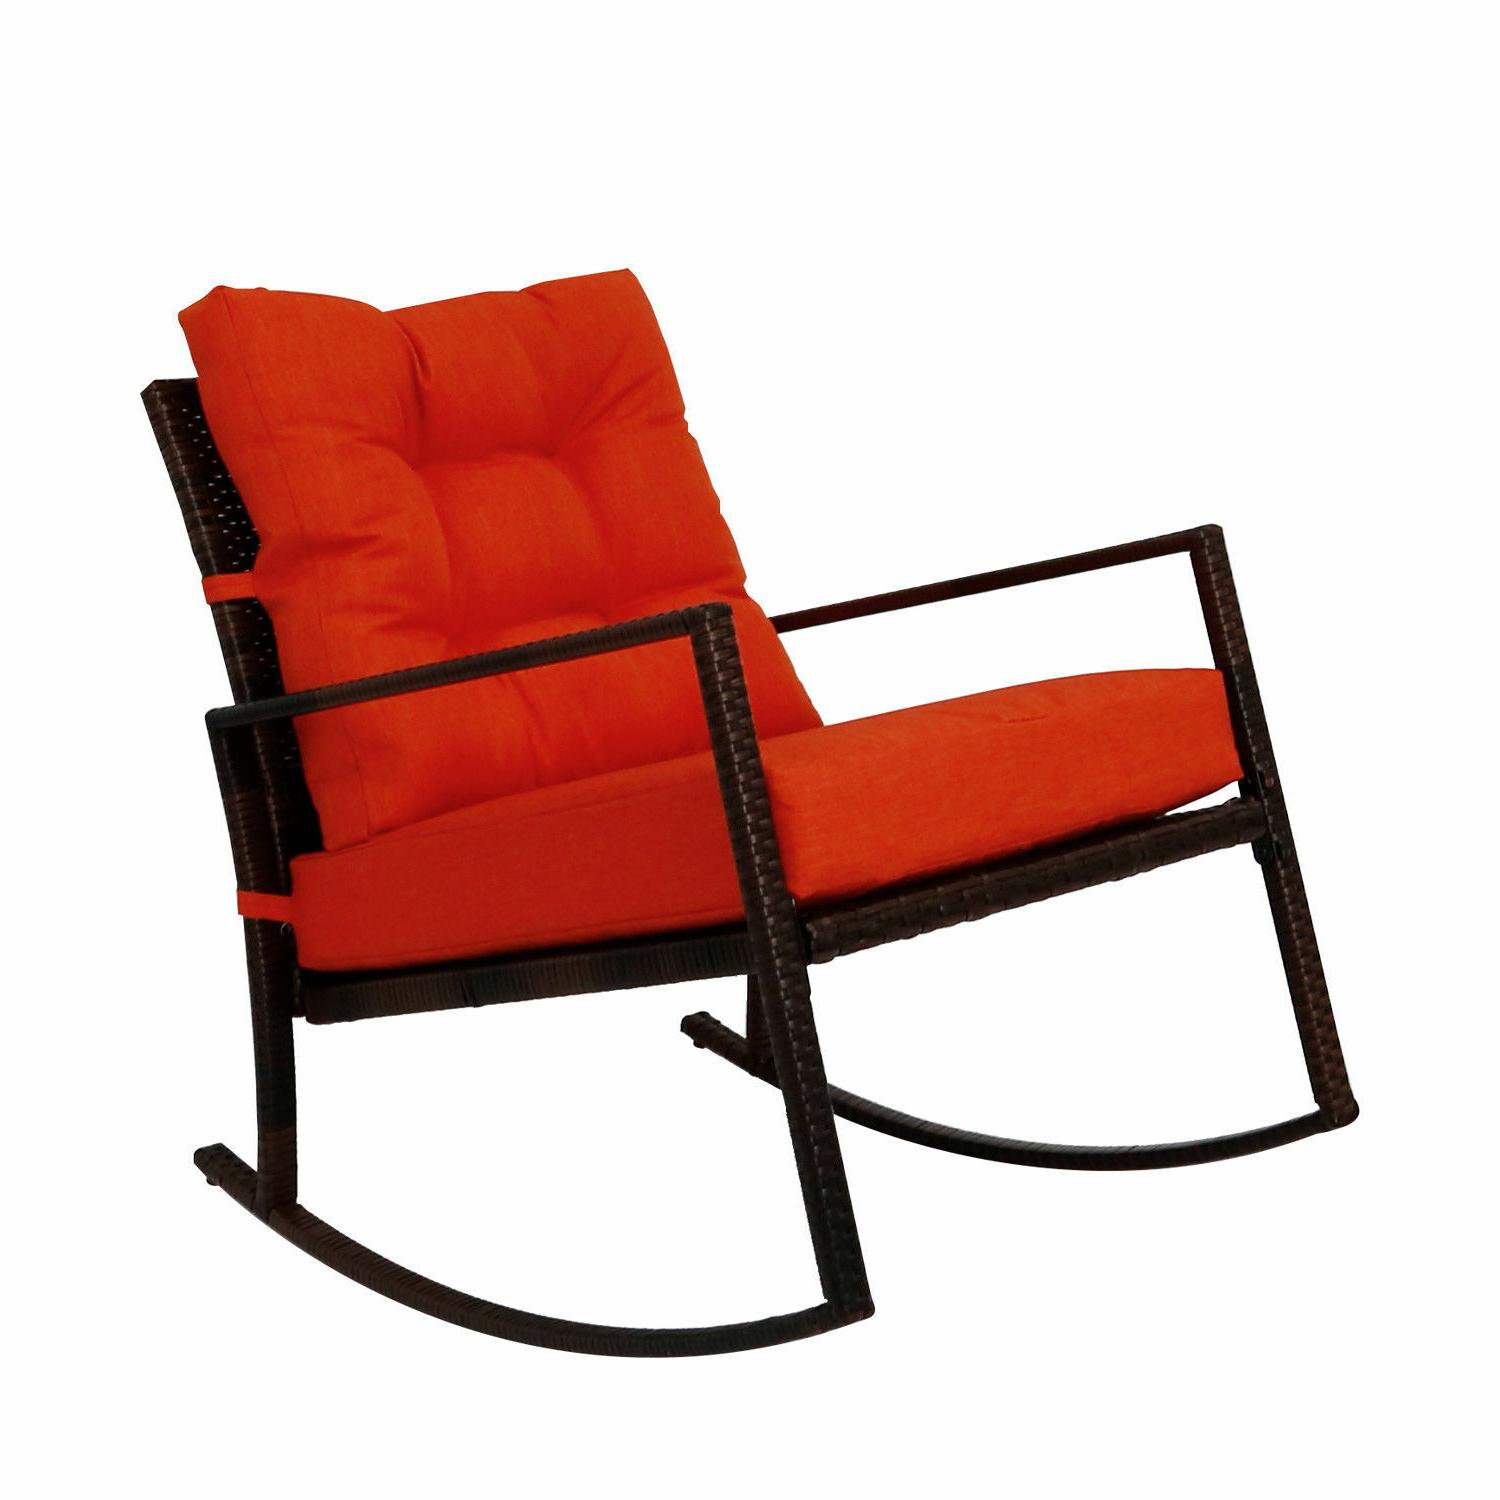 Outdoor Chair Patio Furniture Seat